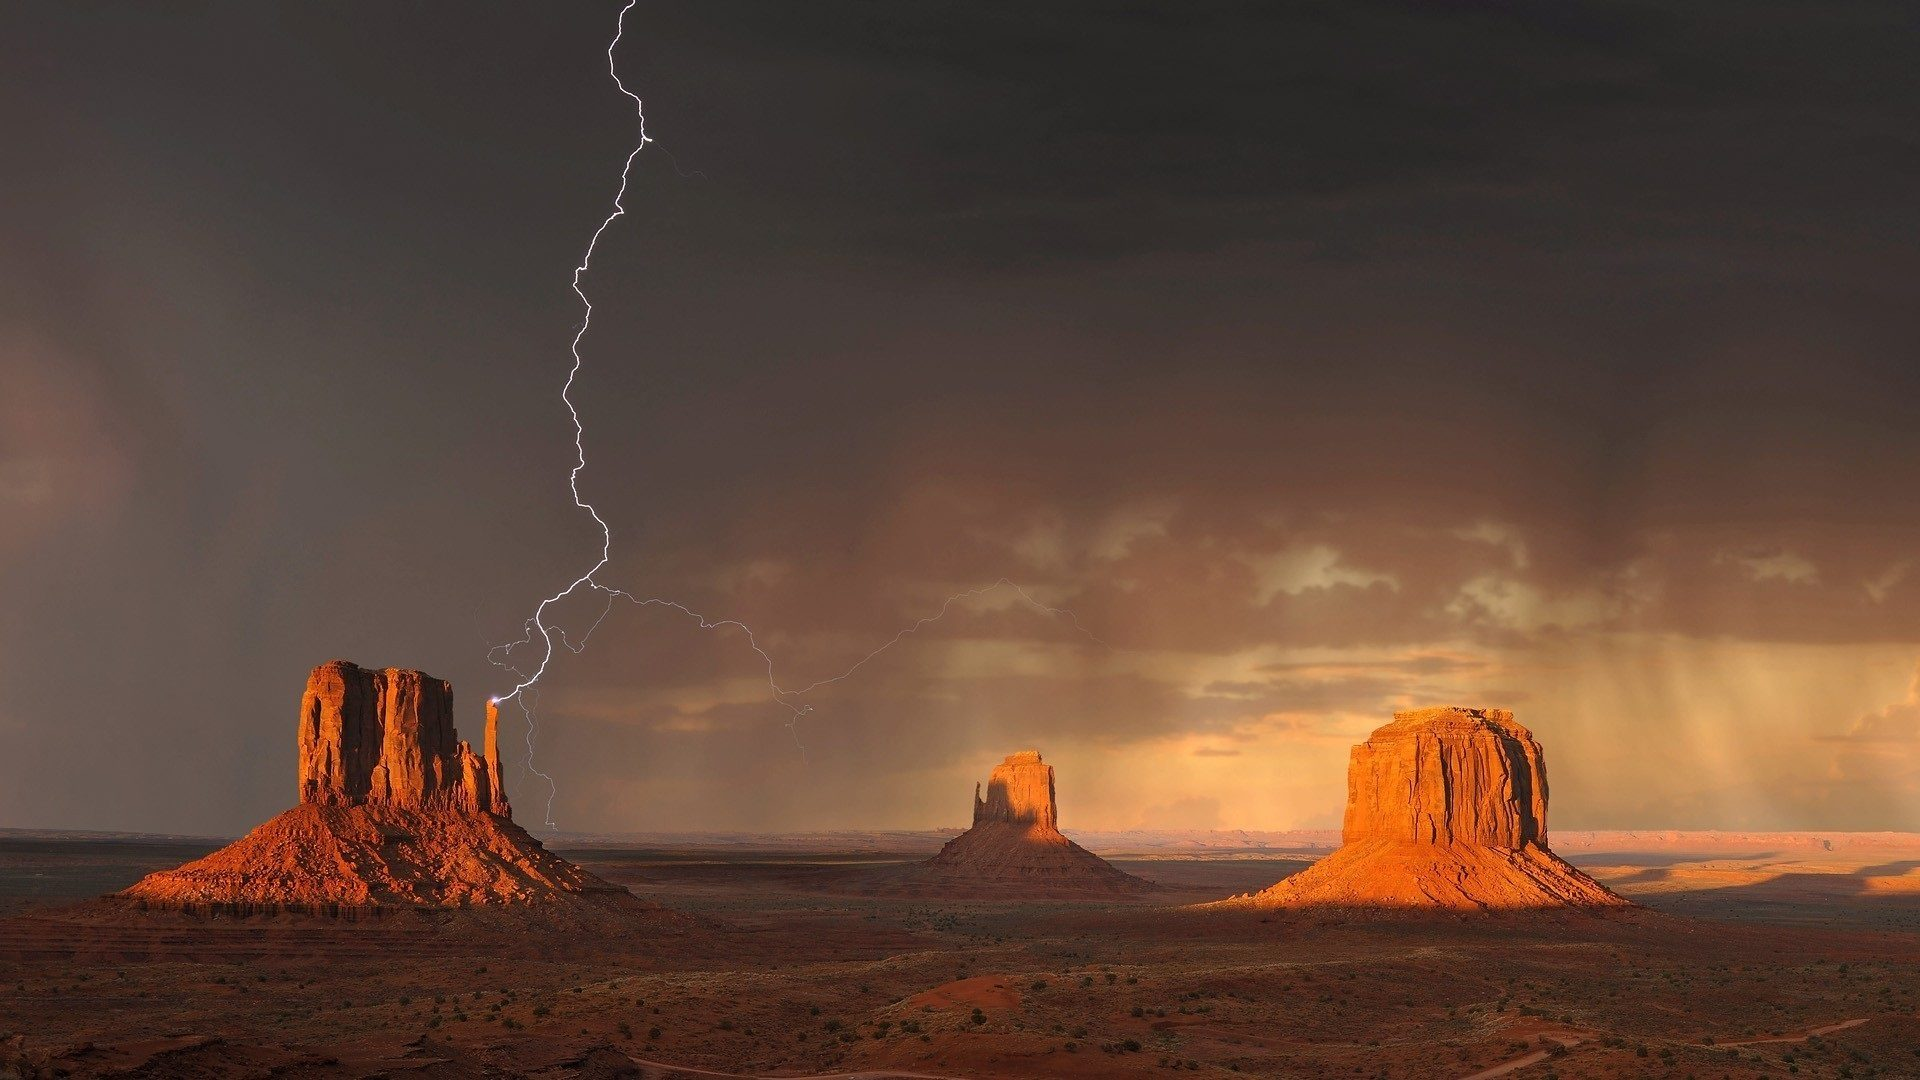 Sturm, Tal, Ray, Wolken, Monument valley - Wallpaper HD - Prof.-falken.com